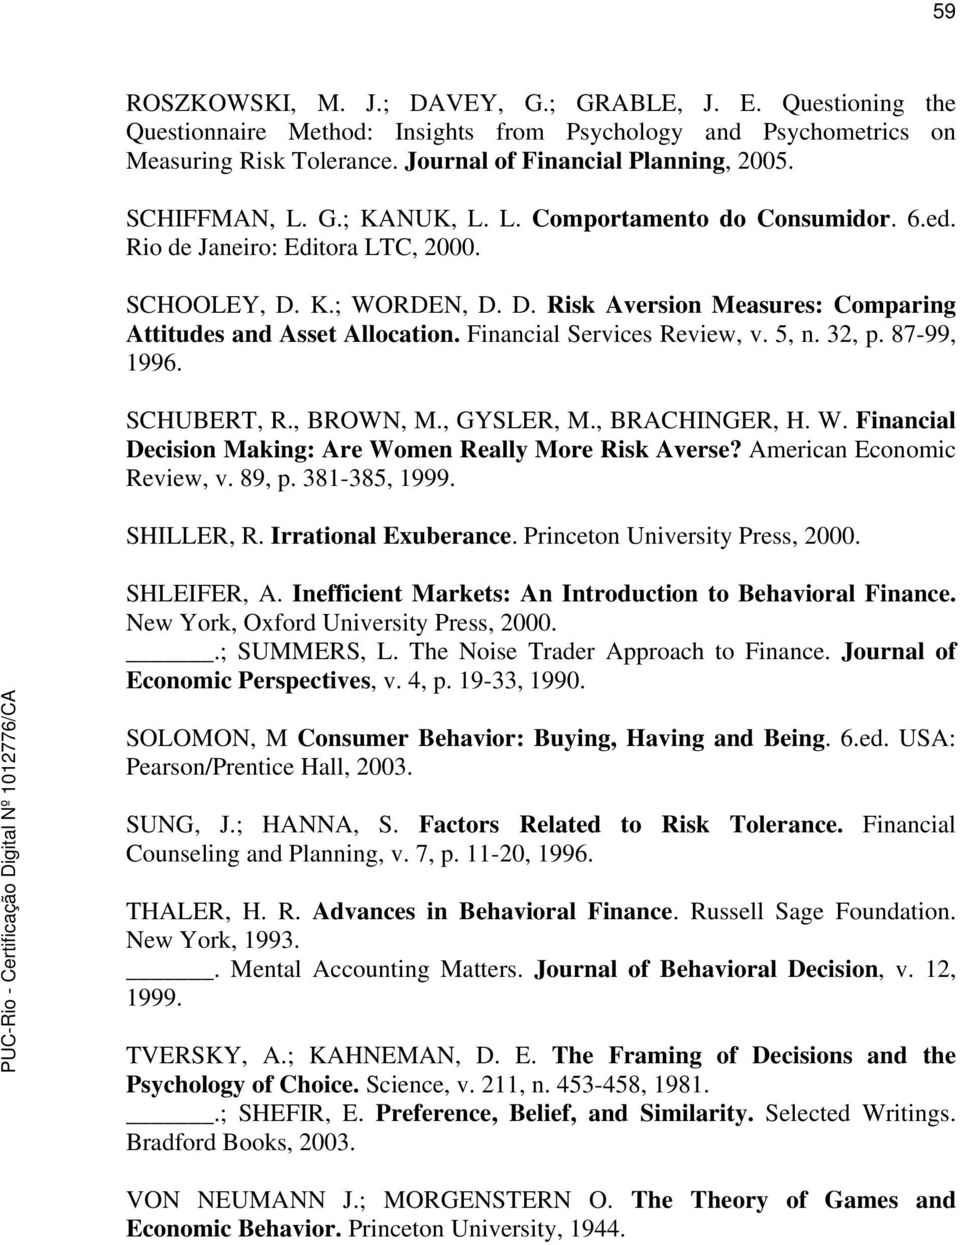 Financial Services Review, v. 5, n. 32, p. 87-99, 1996. SCHUBERT, R., BROWN, M., GYSLER, M., BRACHINGER, H. W. Financial Decision Making: Are Women Really More Risk Averse?